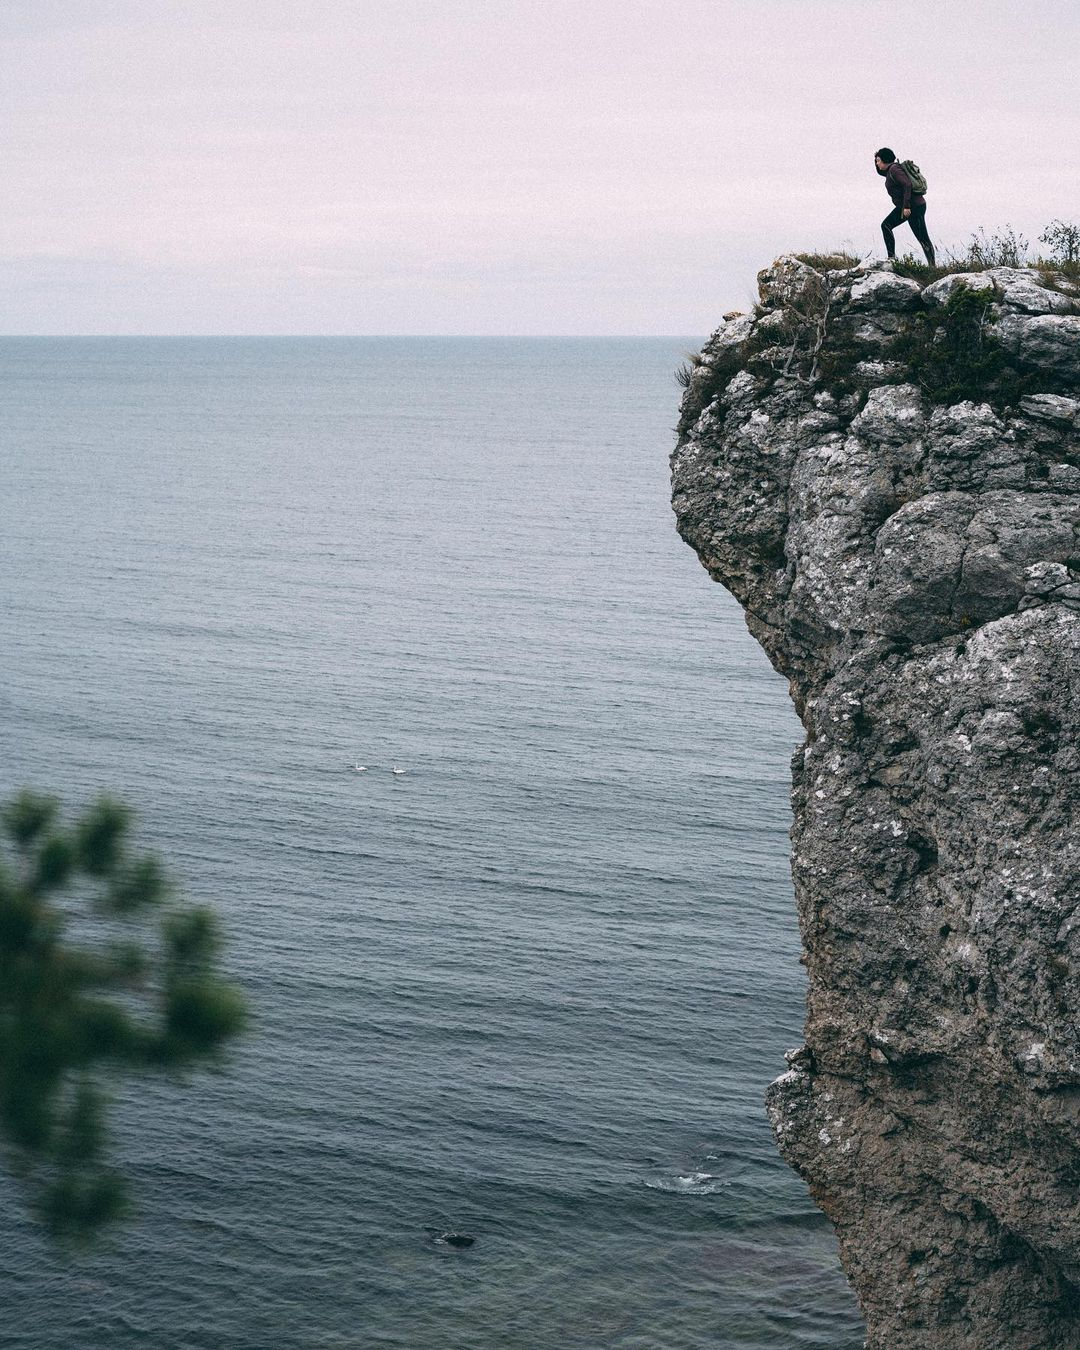 A woman is standing at the edge of a cliff. Down below, the wind ruffles the water. The sky is overcast.